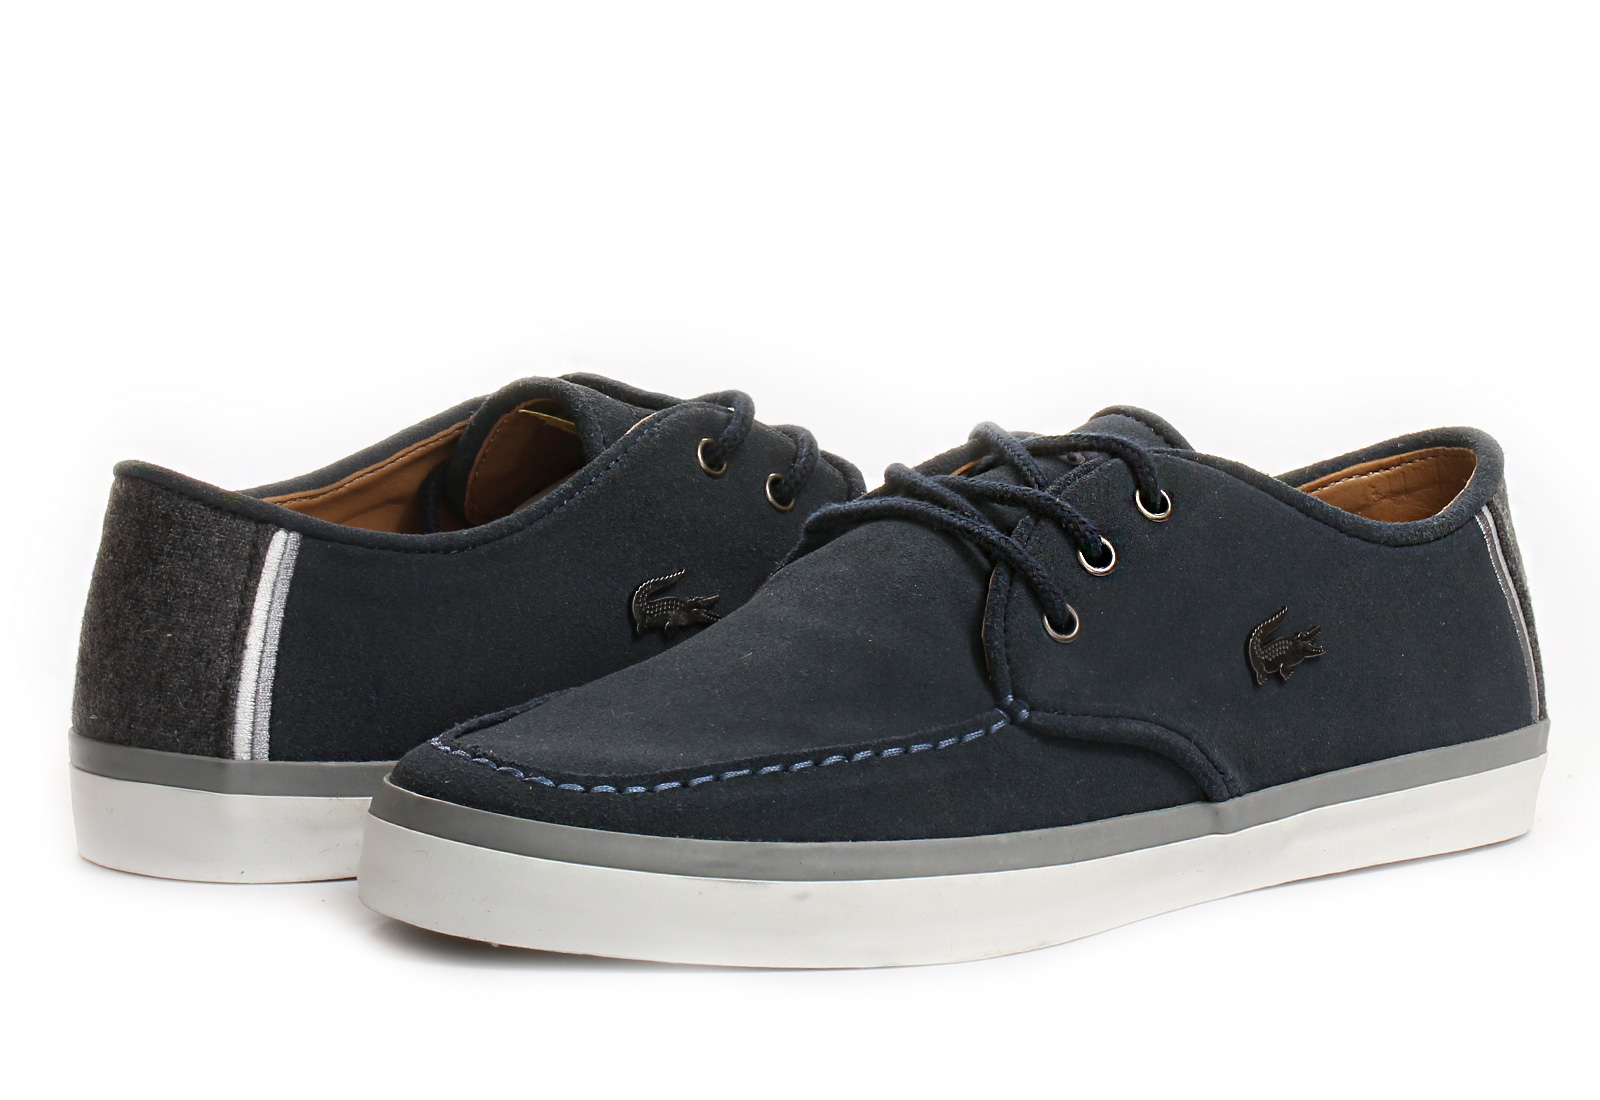 lacoste shoes sevrin 133srm3016 125 online shop for sneakers shoes and boots. Black Bedroom Furniture Sets. Home Design Ideas